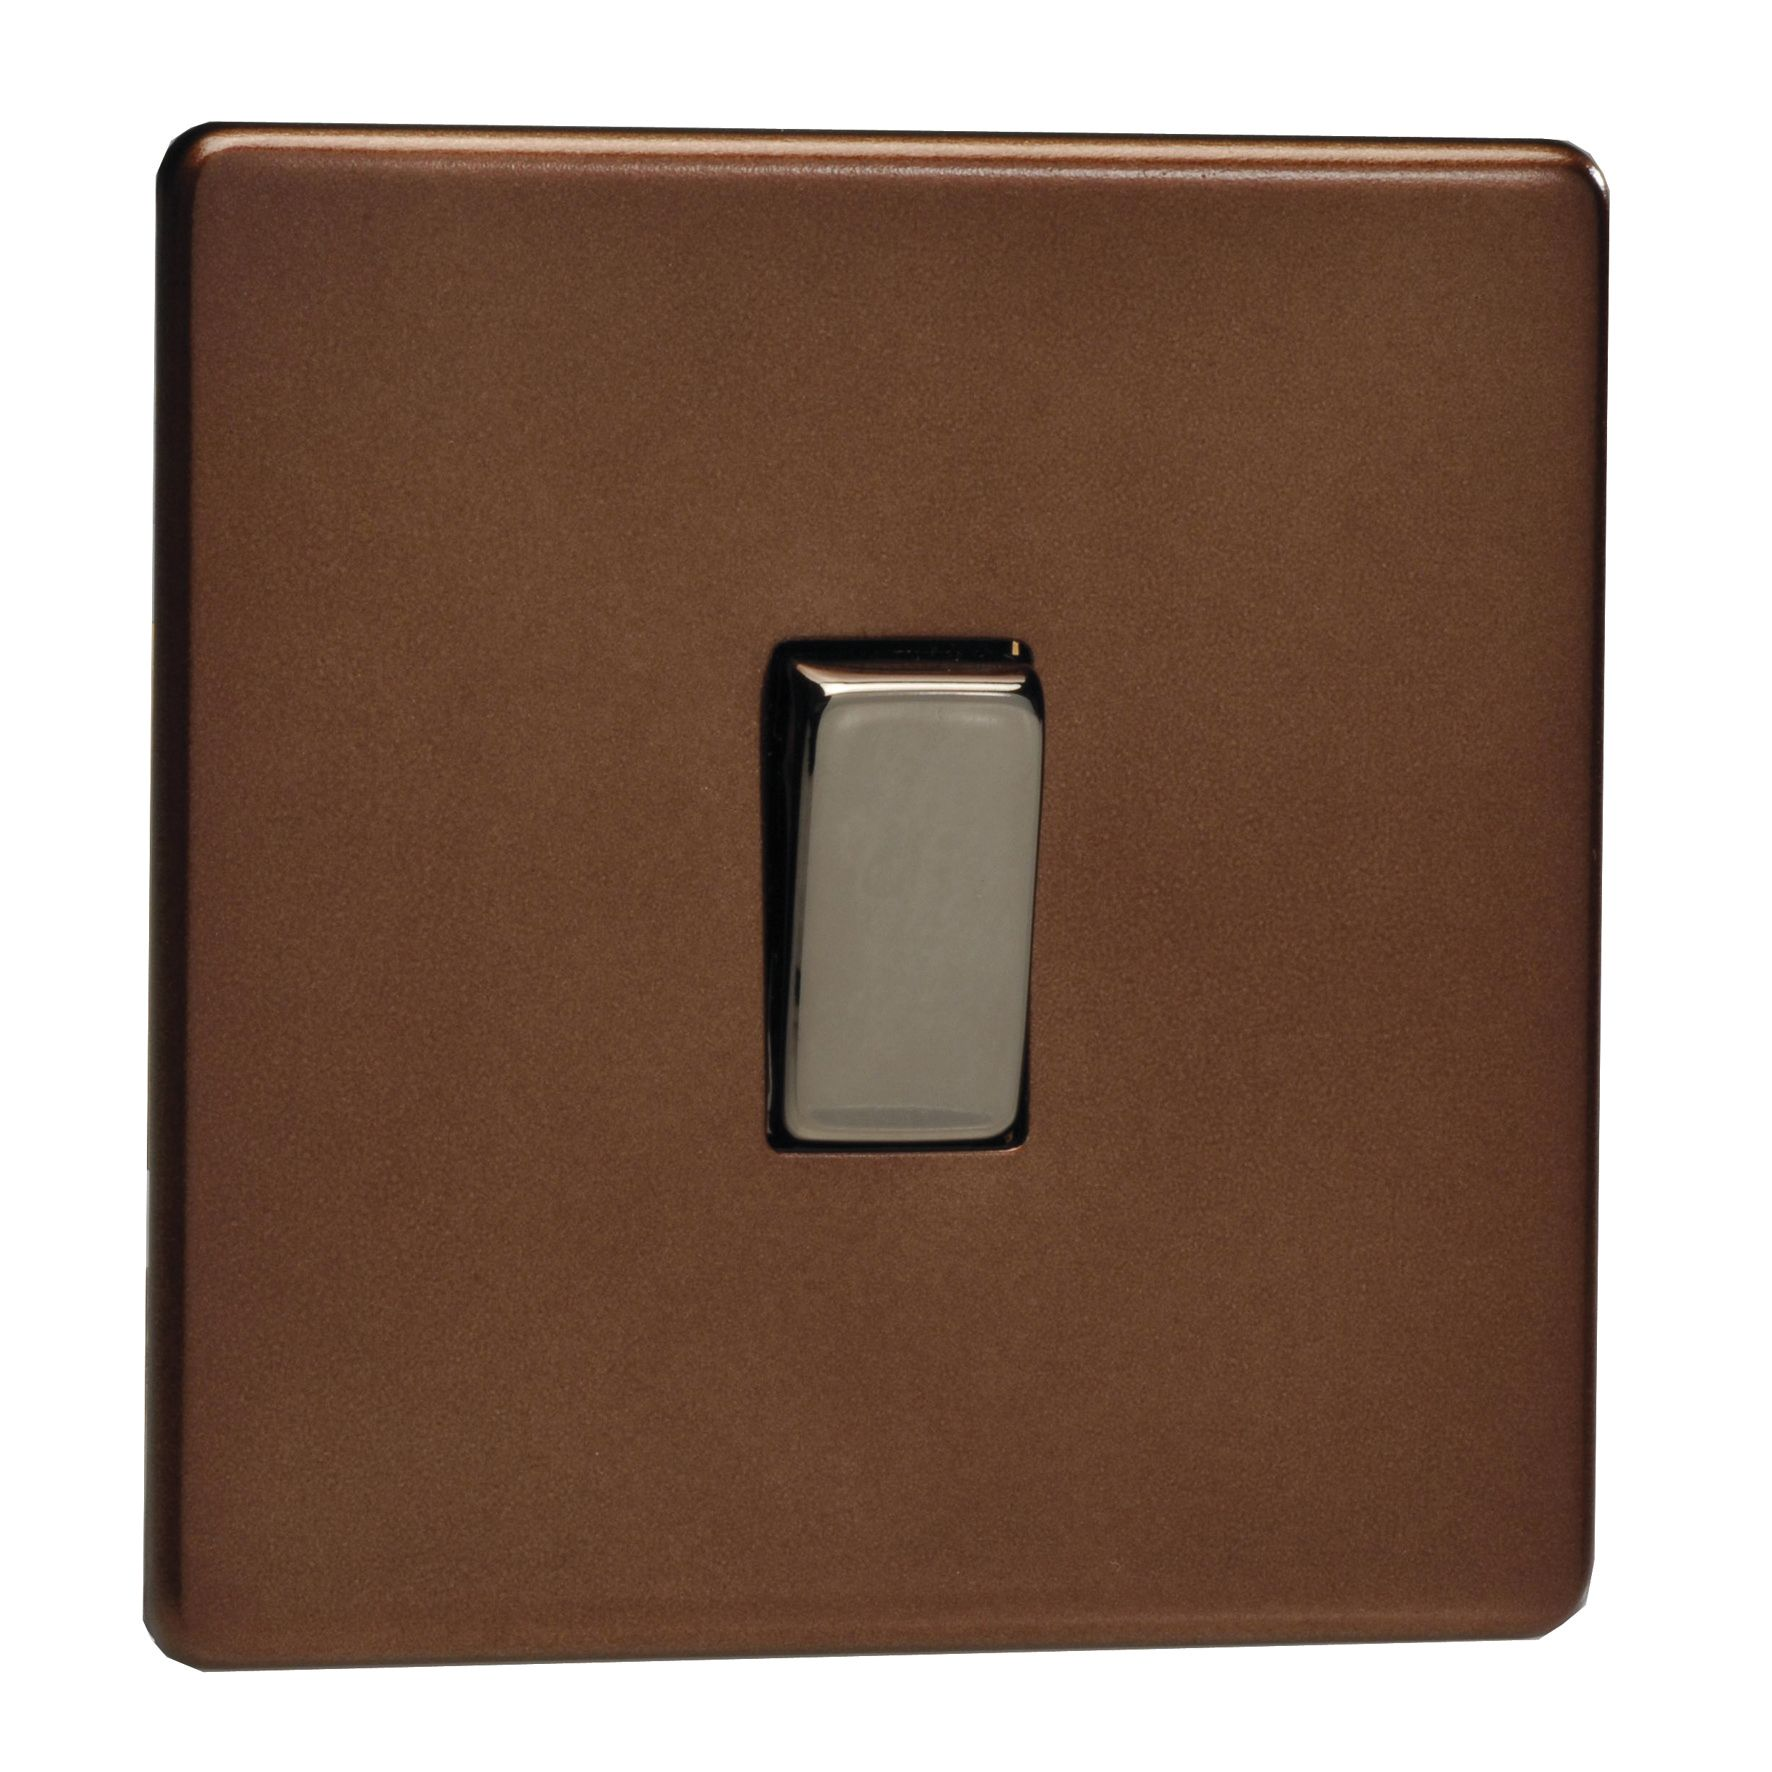 Trunk Hardware-Leather Handle Kits-Trunks /& Chests-Bronze Color End Caps T